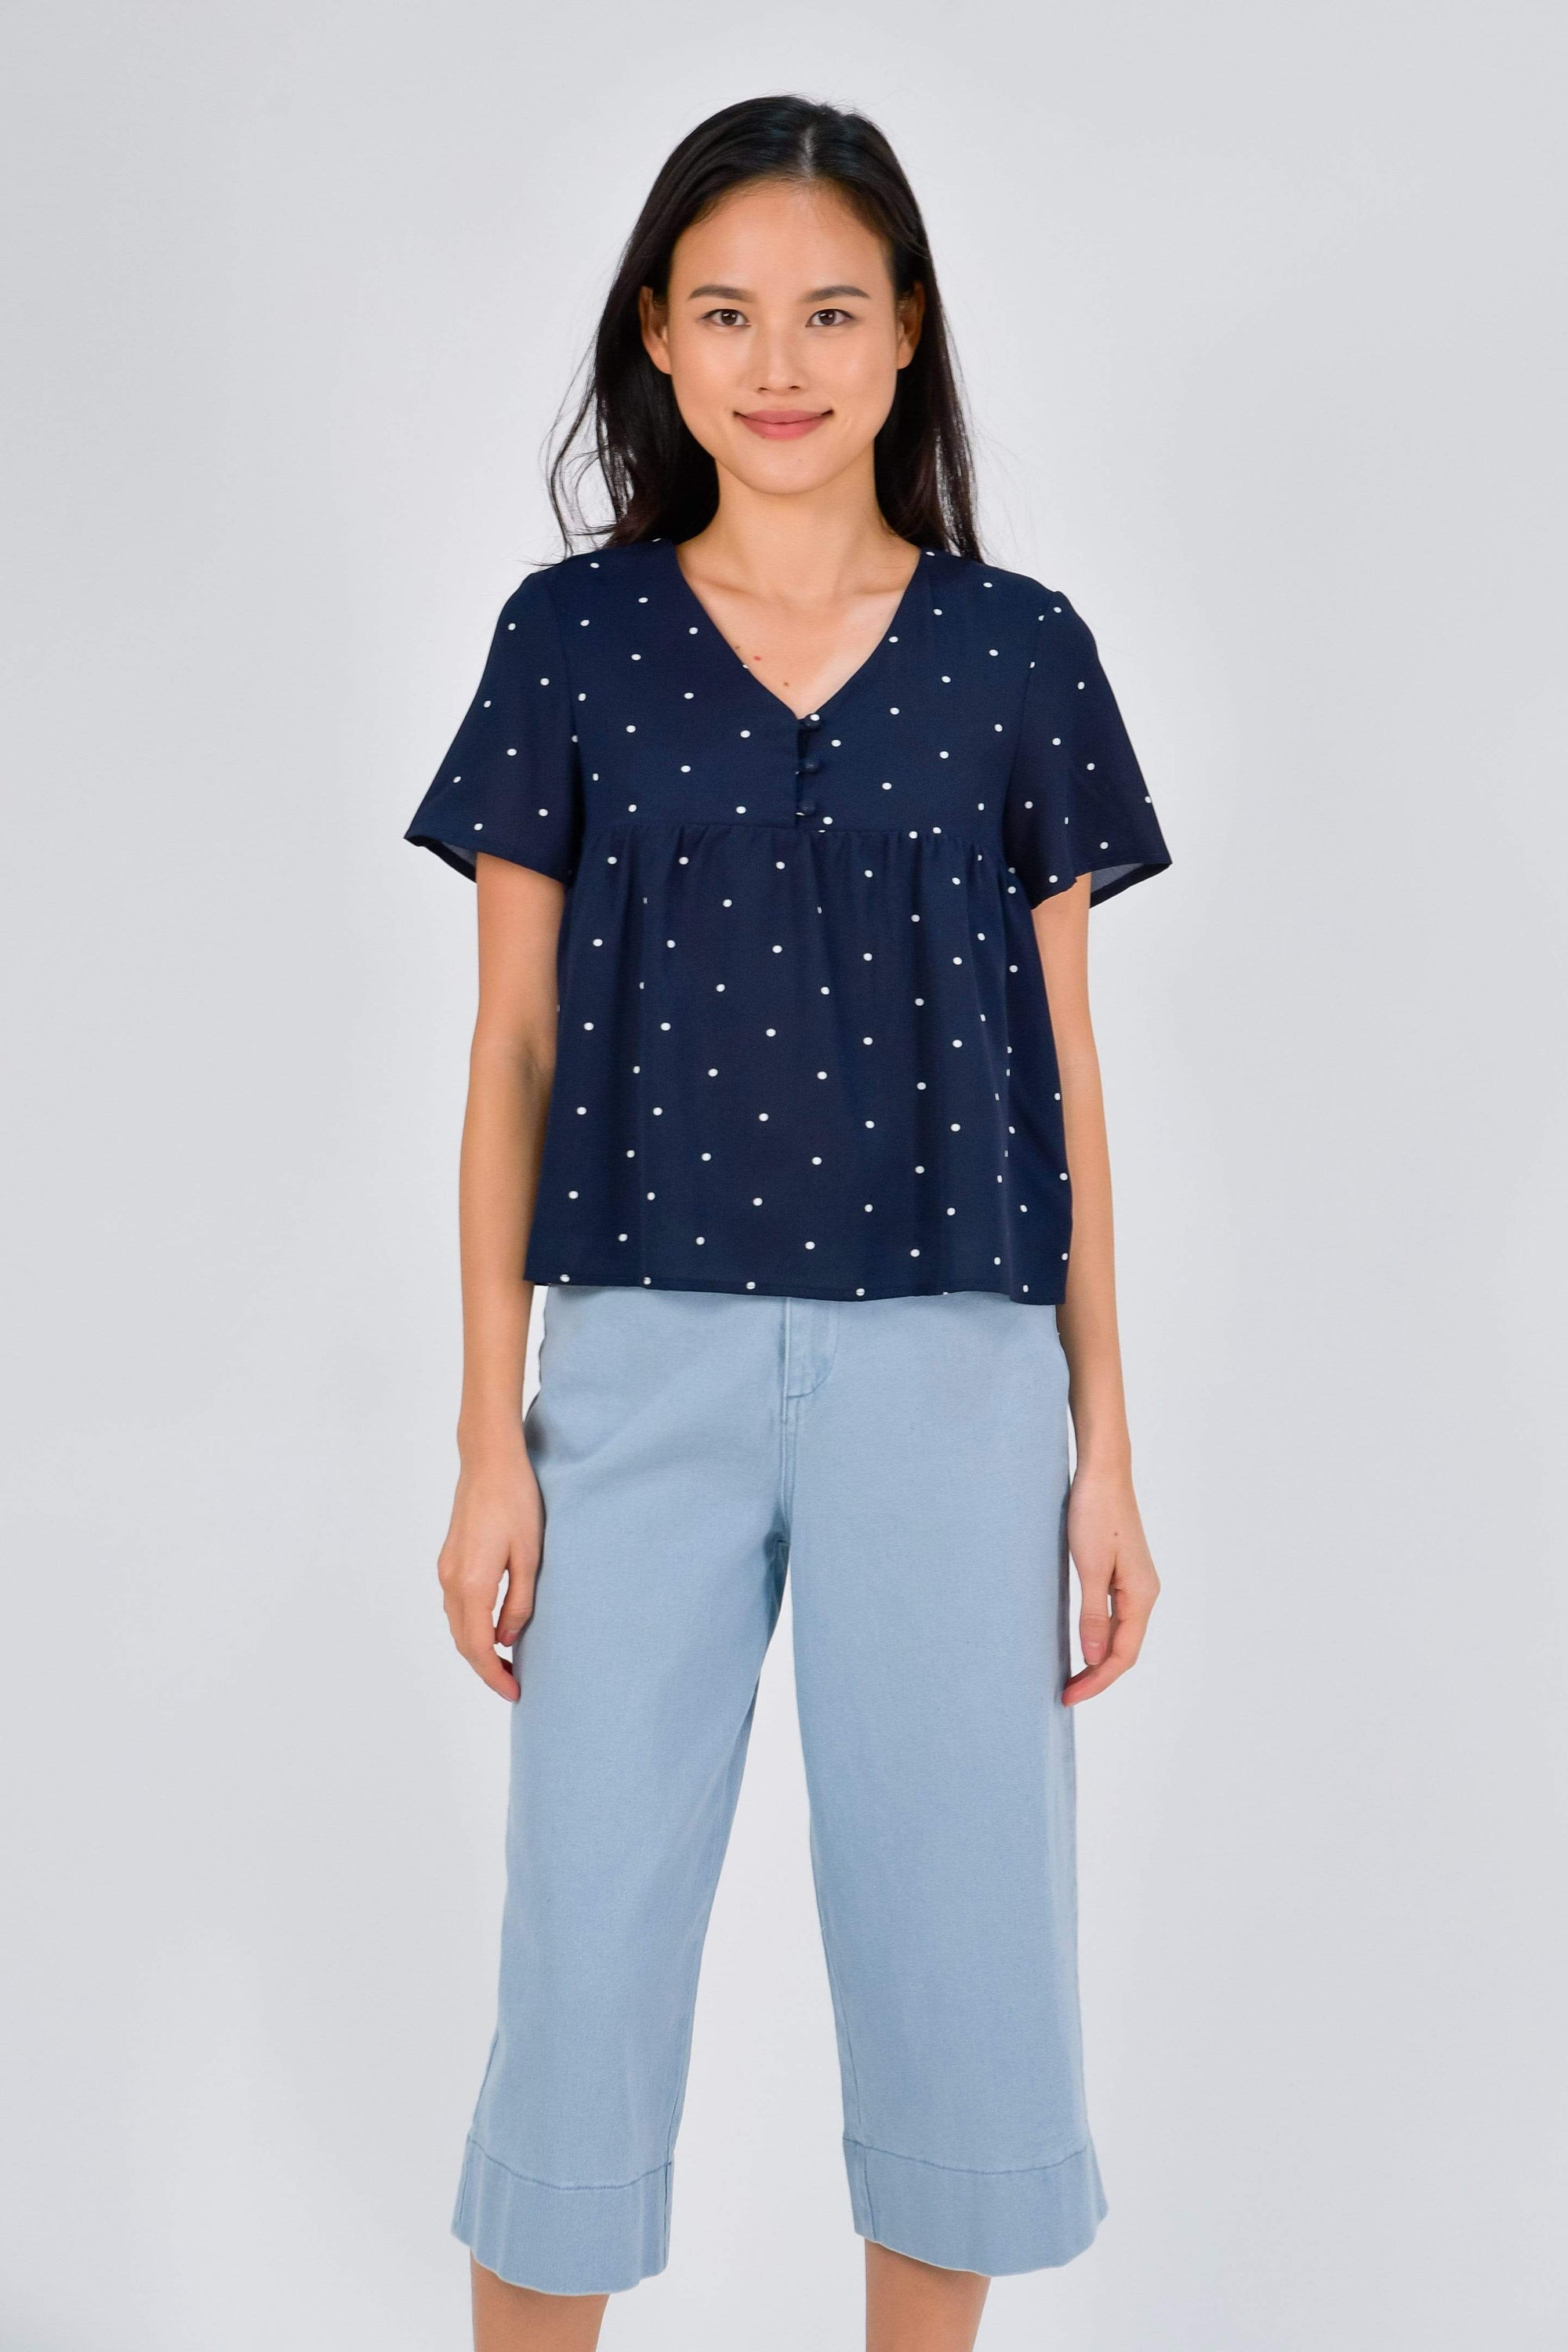 RILEY NAVY POLKA DOT SLEEVED TOP